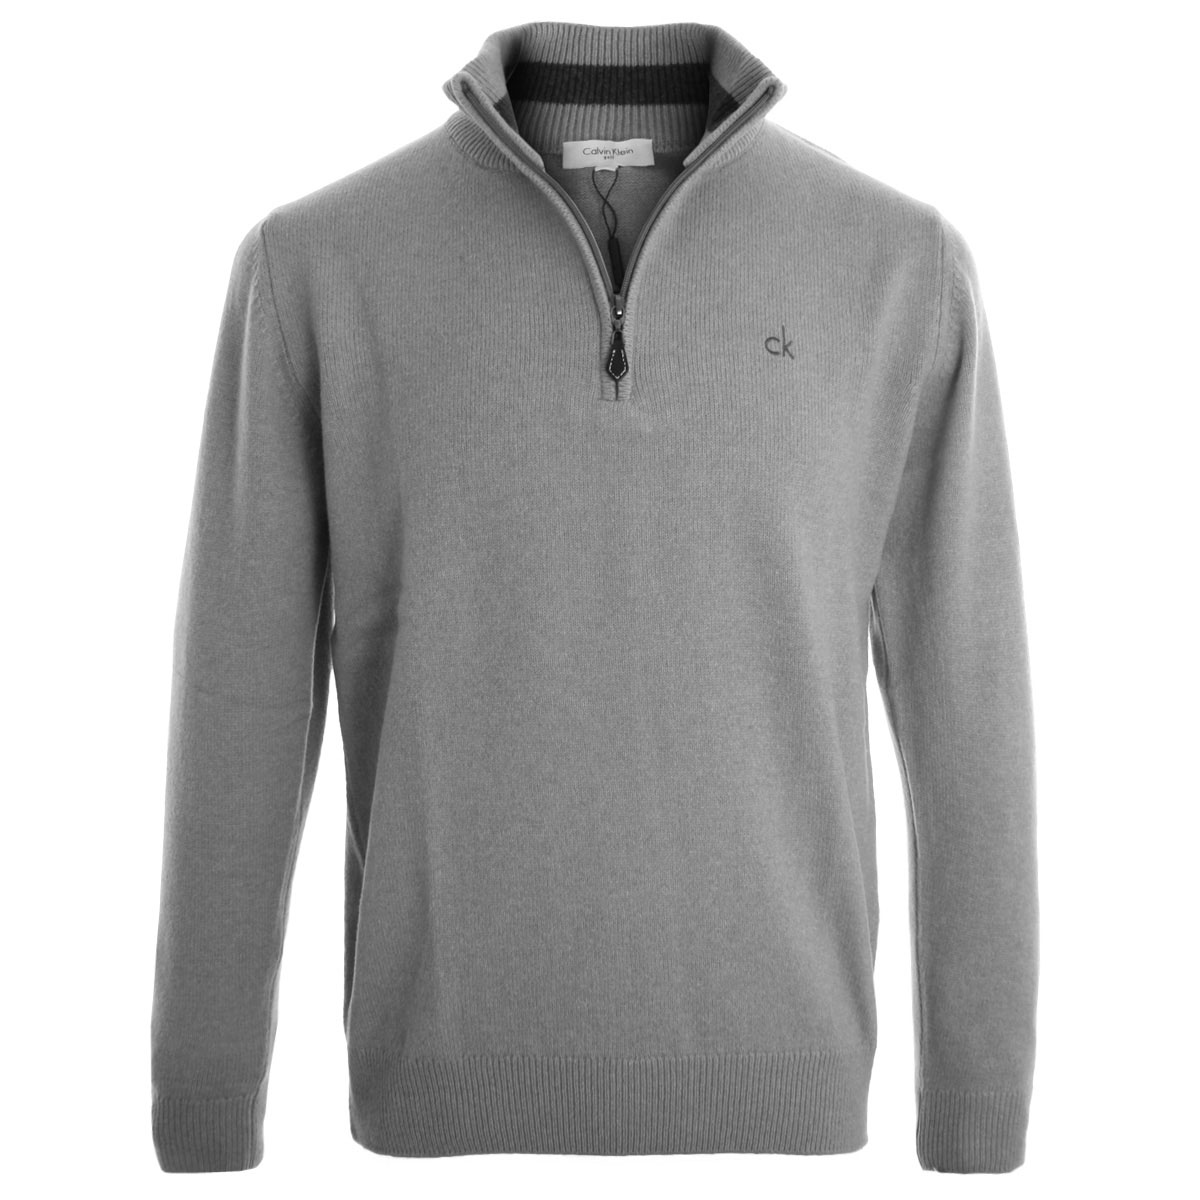 calvin klein 2014 mens ck 1 4 zip neck superwool jumper golf pullover sweater ebay. Black Bedroom Furniture Sets. Home Design Ideas